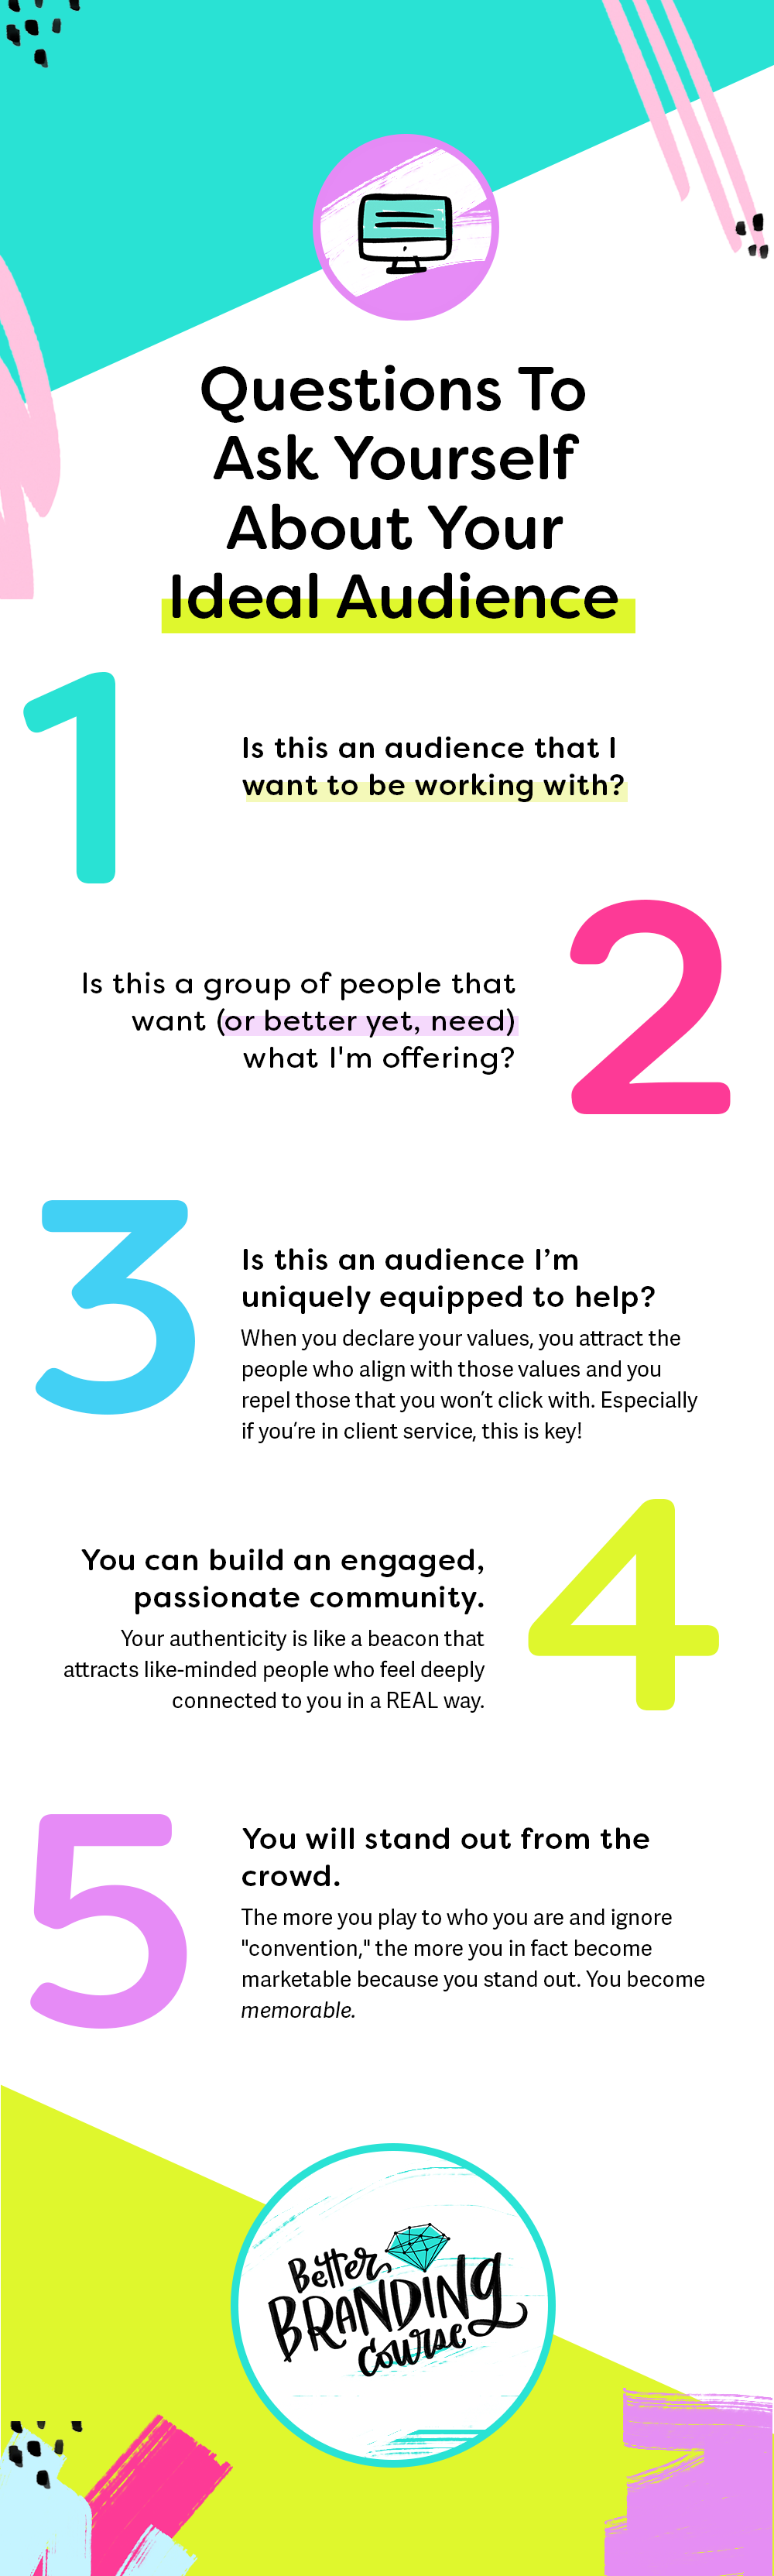 InfographicTemplate_idealaudience.png